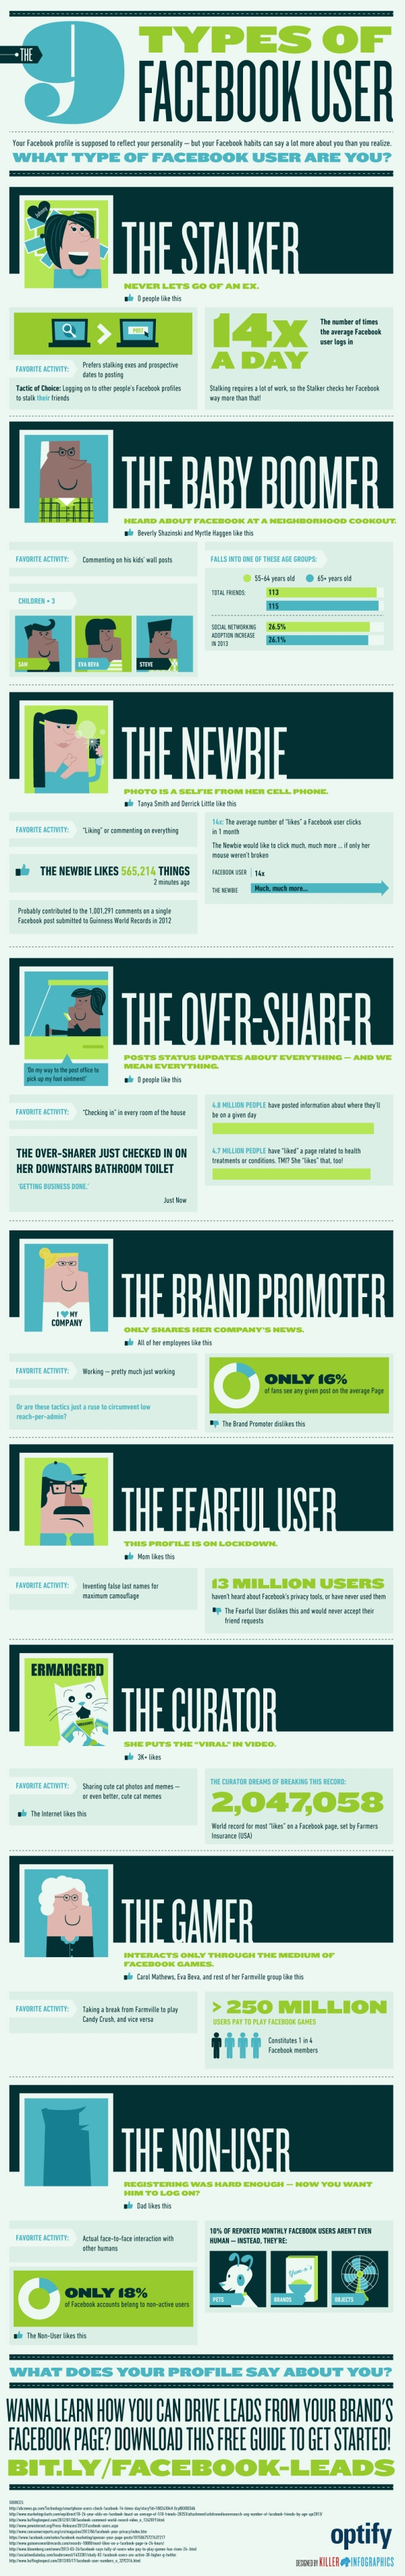 The 9 Types of Facebook User Infographic by @optify | Social Marketing